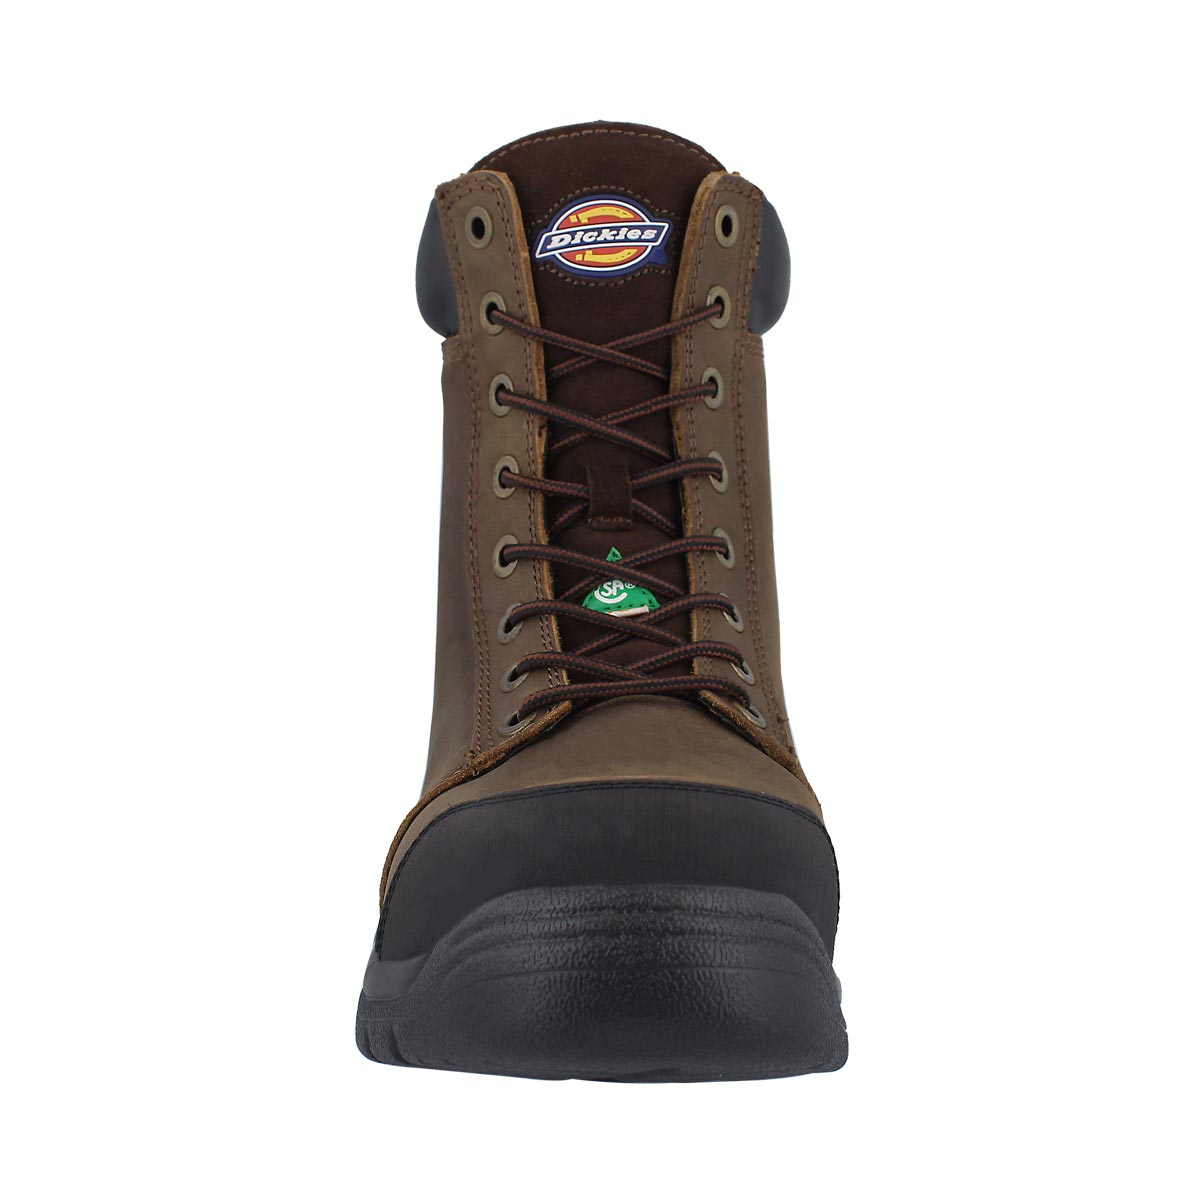 Mns Wrecker brown lace up 8